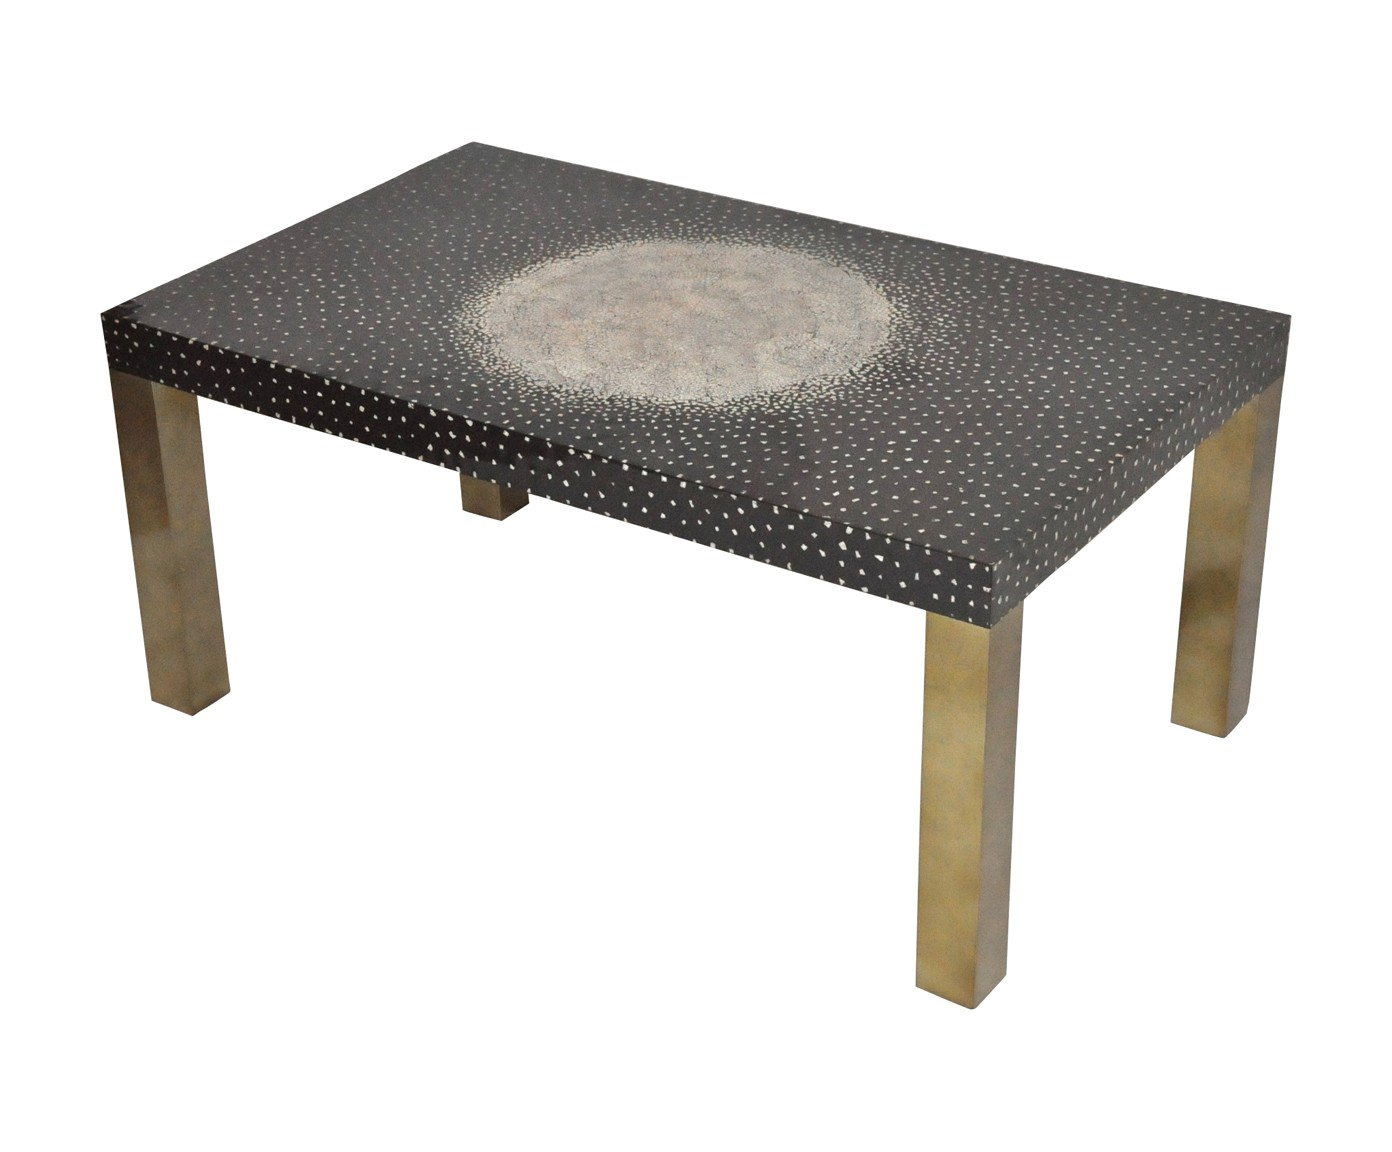 table basse rectangulaire laque noire pieds bronze demeure et jardin. Black Bedroom Furniture Sets. Home Design Ideas